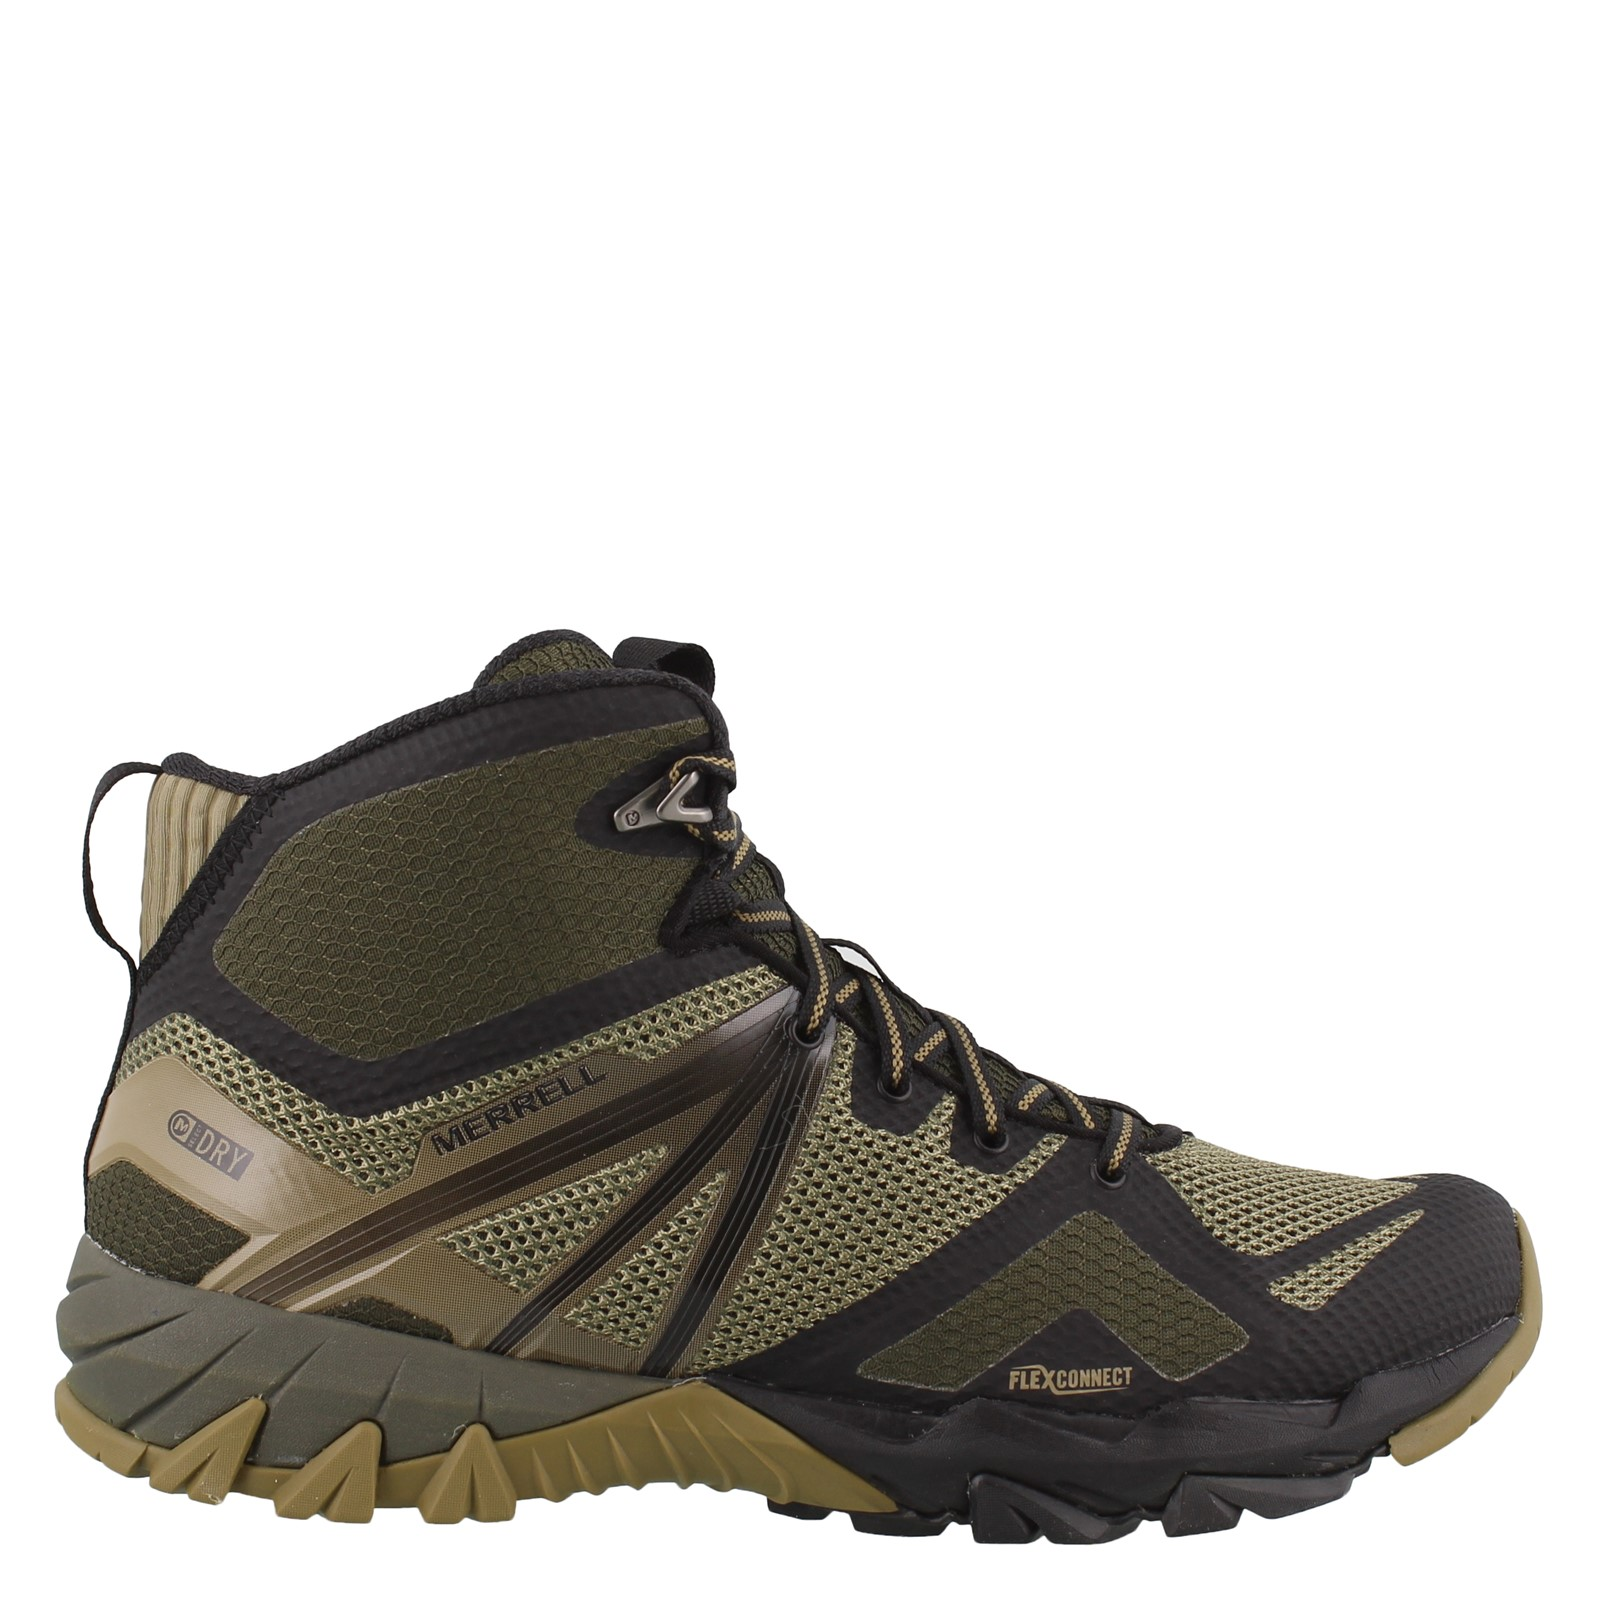 street price outlet for sale new images of Men's Merrell, MQM Flex Hiking